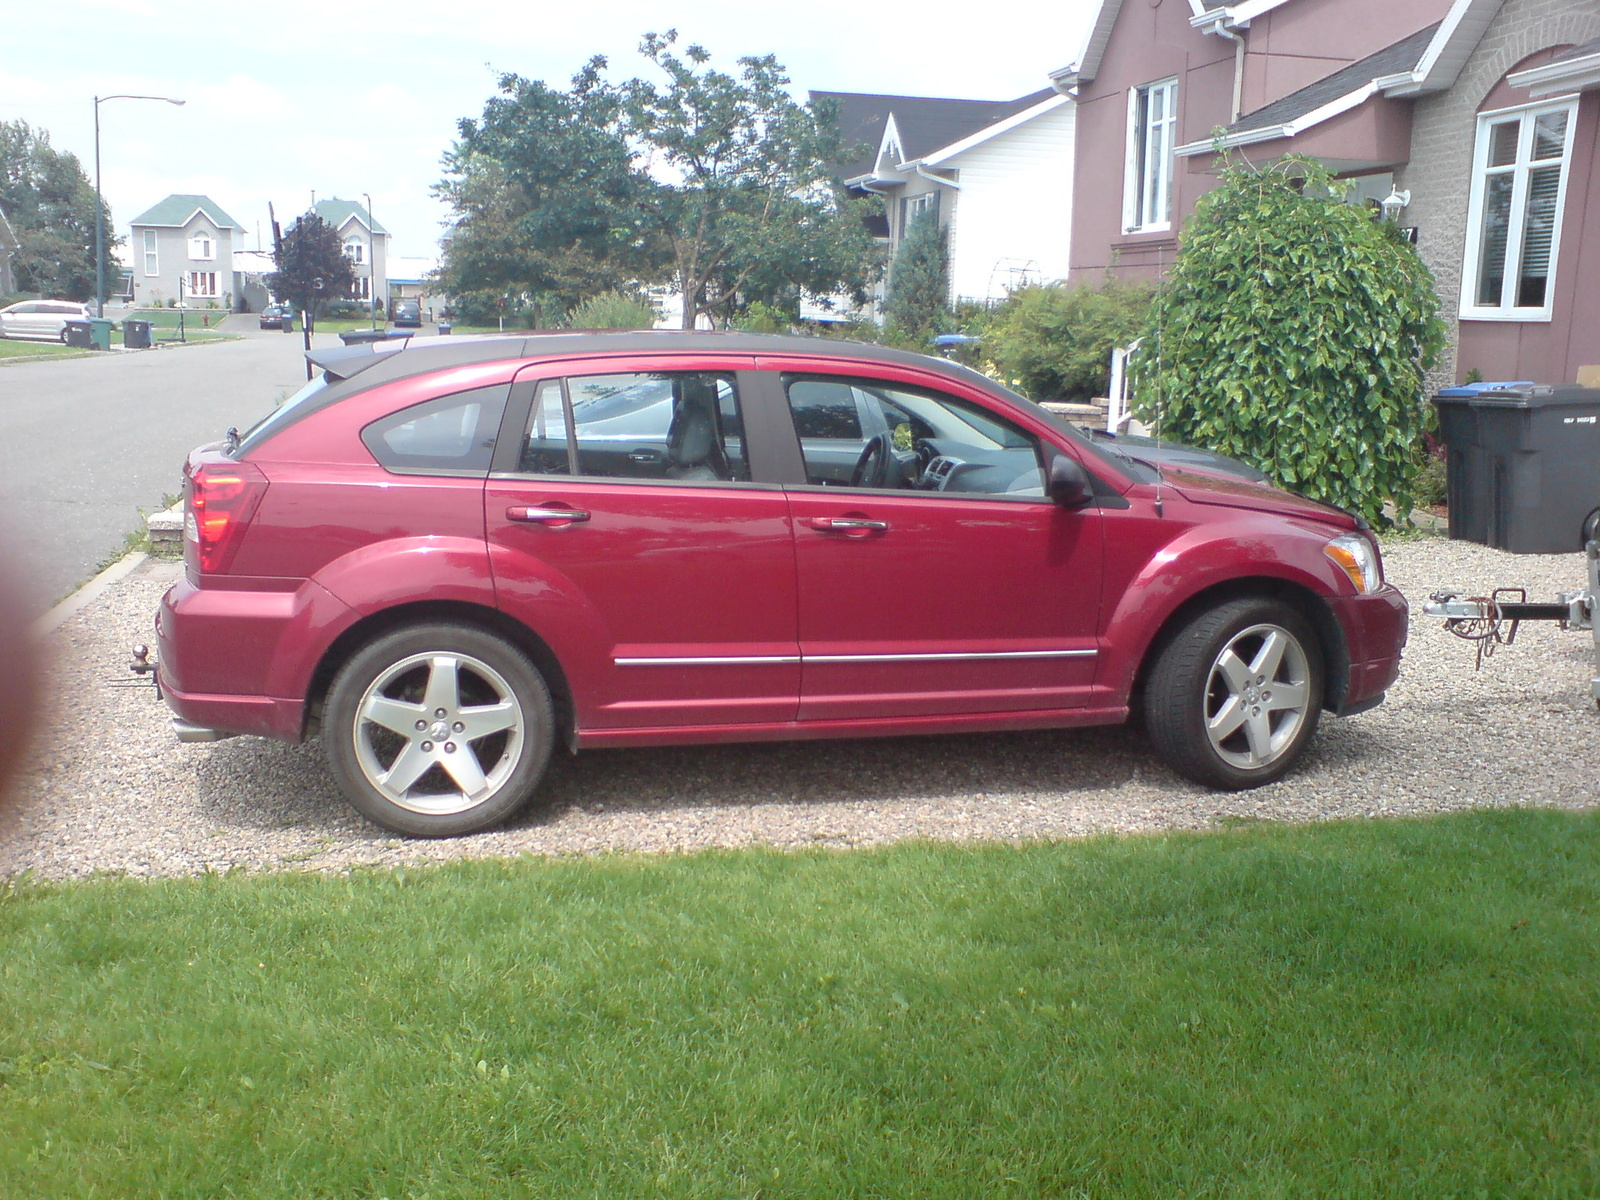 2007 Dodge Caliber R/T AWD - Pictures - 2007 Dodge Caliber R/T AWD pic ...